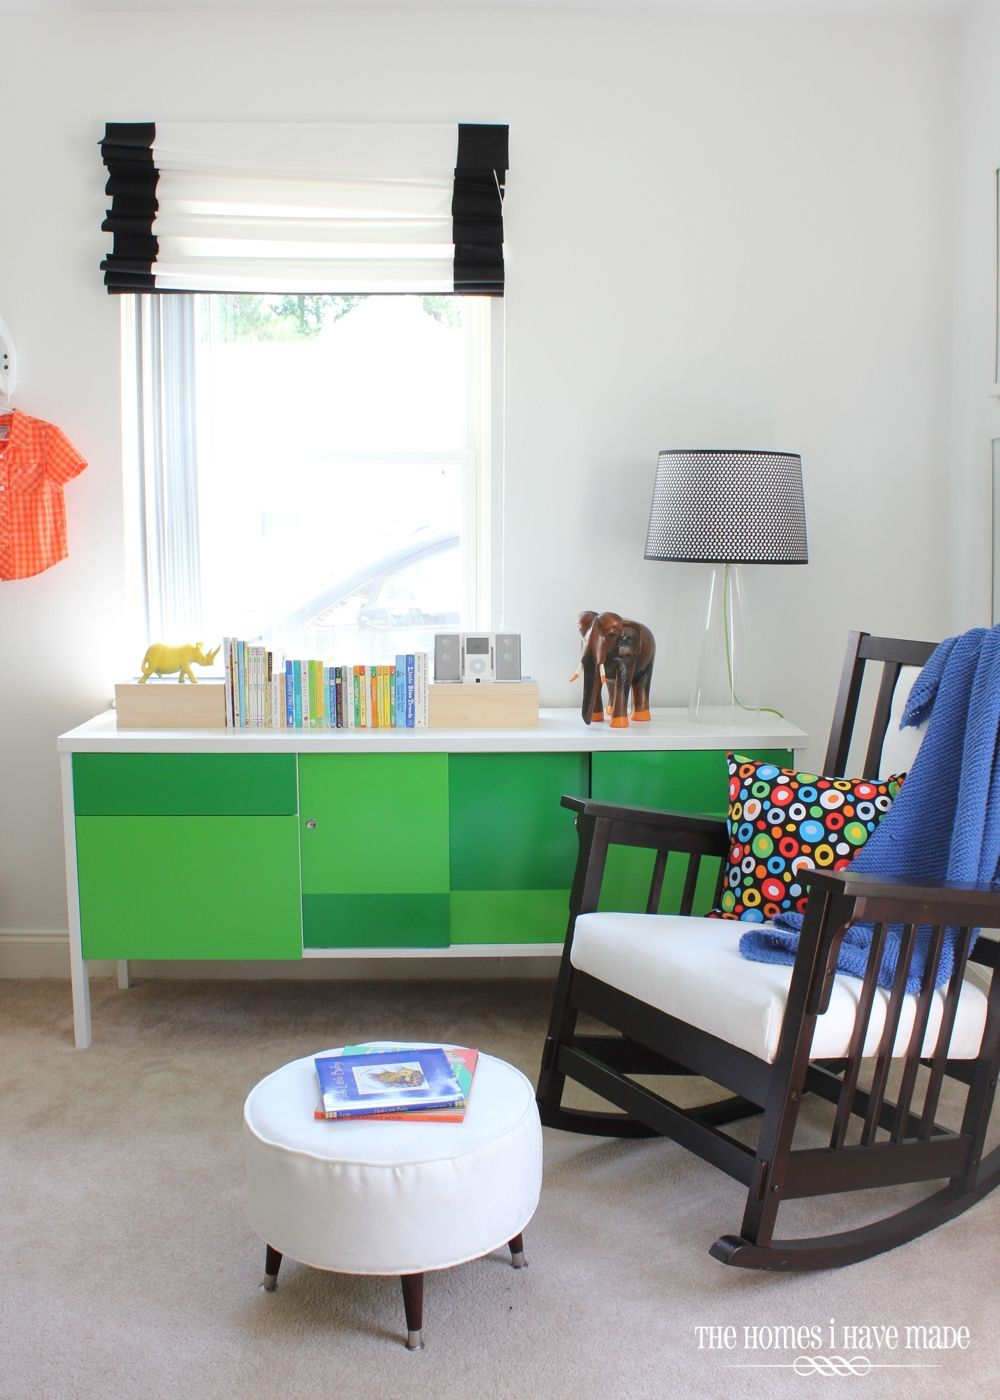 Make a statement in a neutral room with a bold color on furniture!